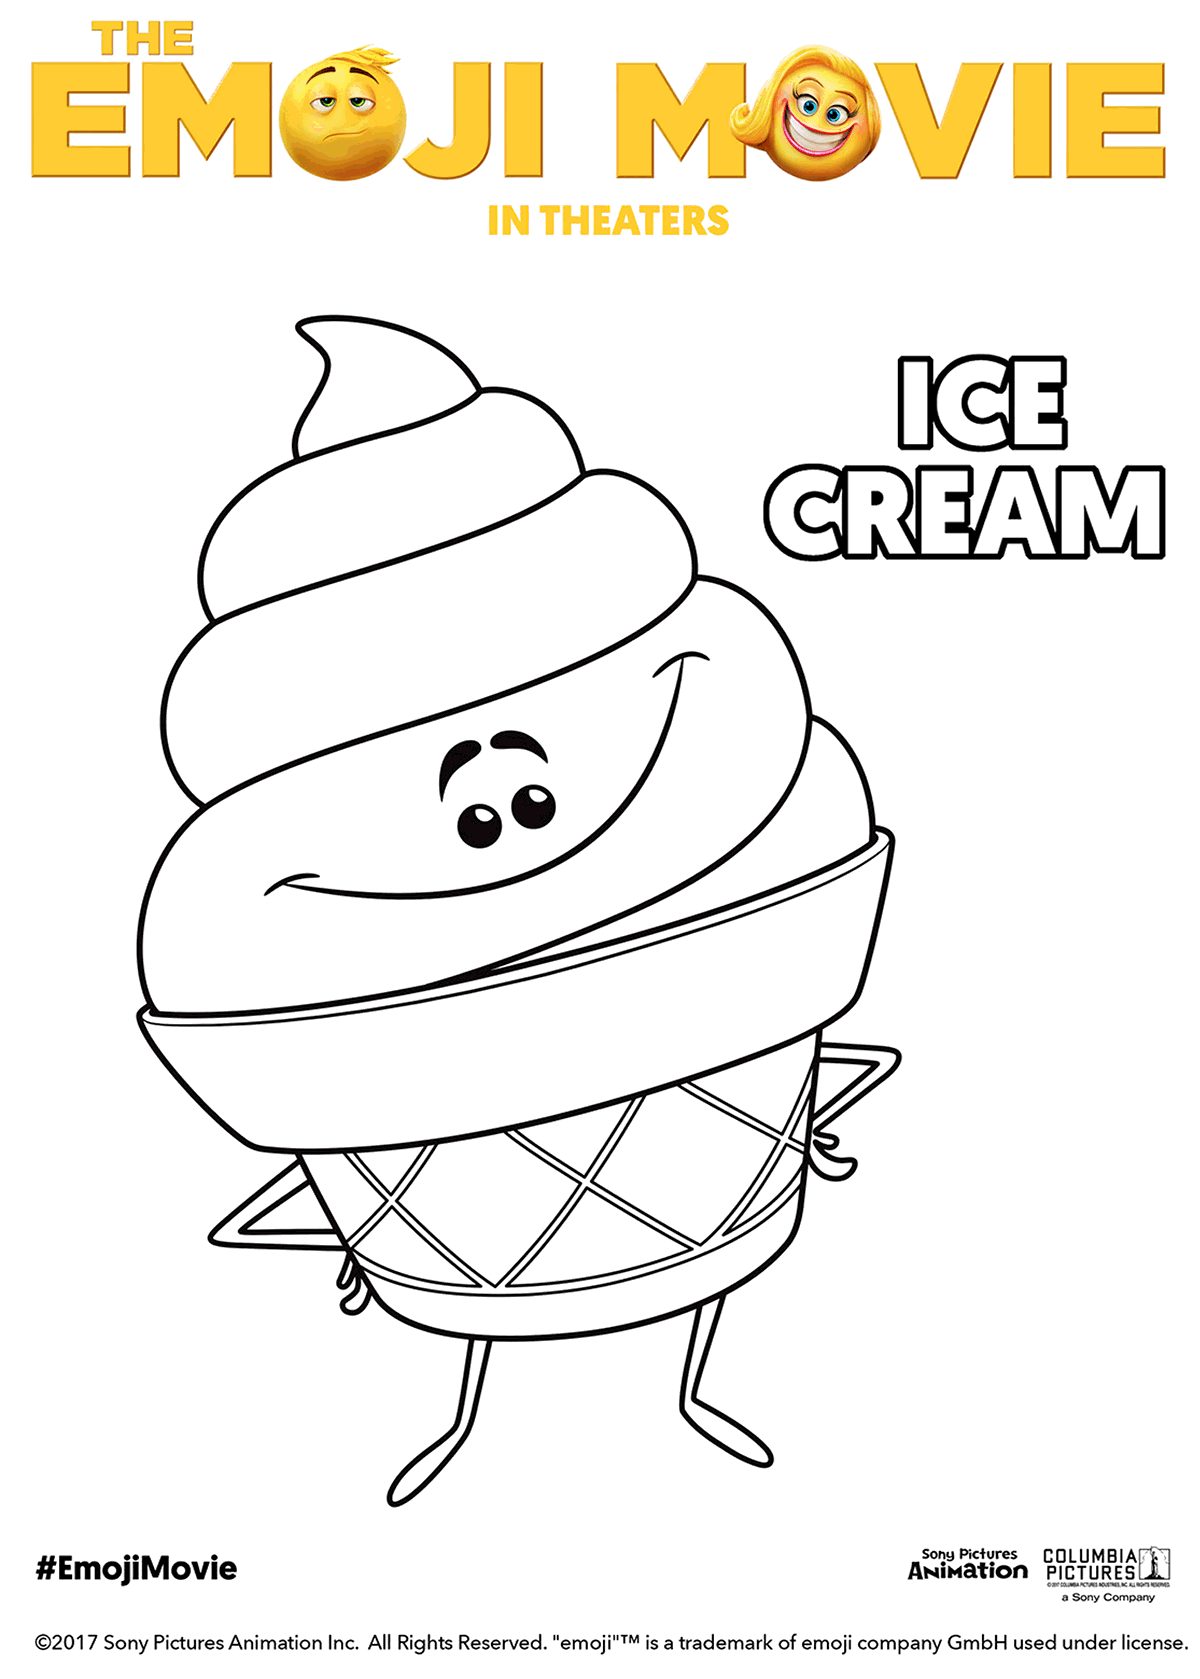 The Emoji Movie Ice Cream Coloring Pages Emoji Coloring Pages Emoji Movie Coloring Pages